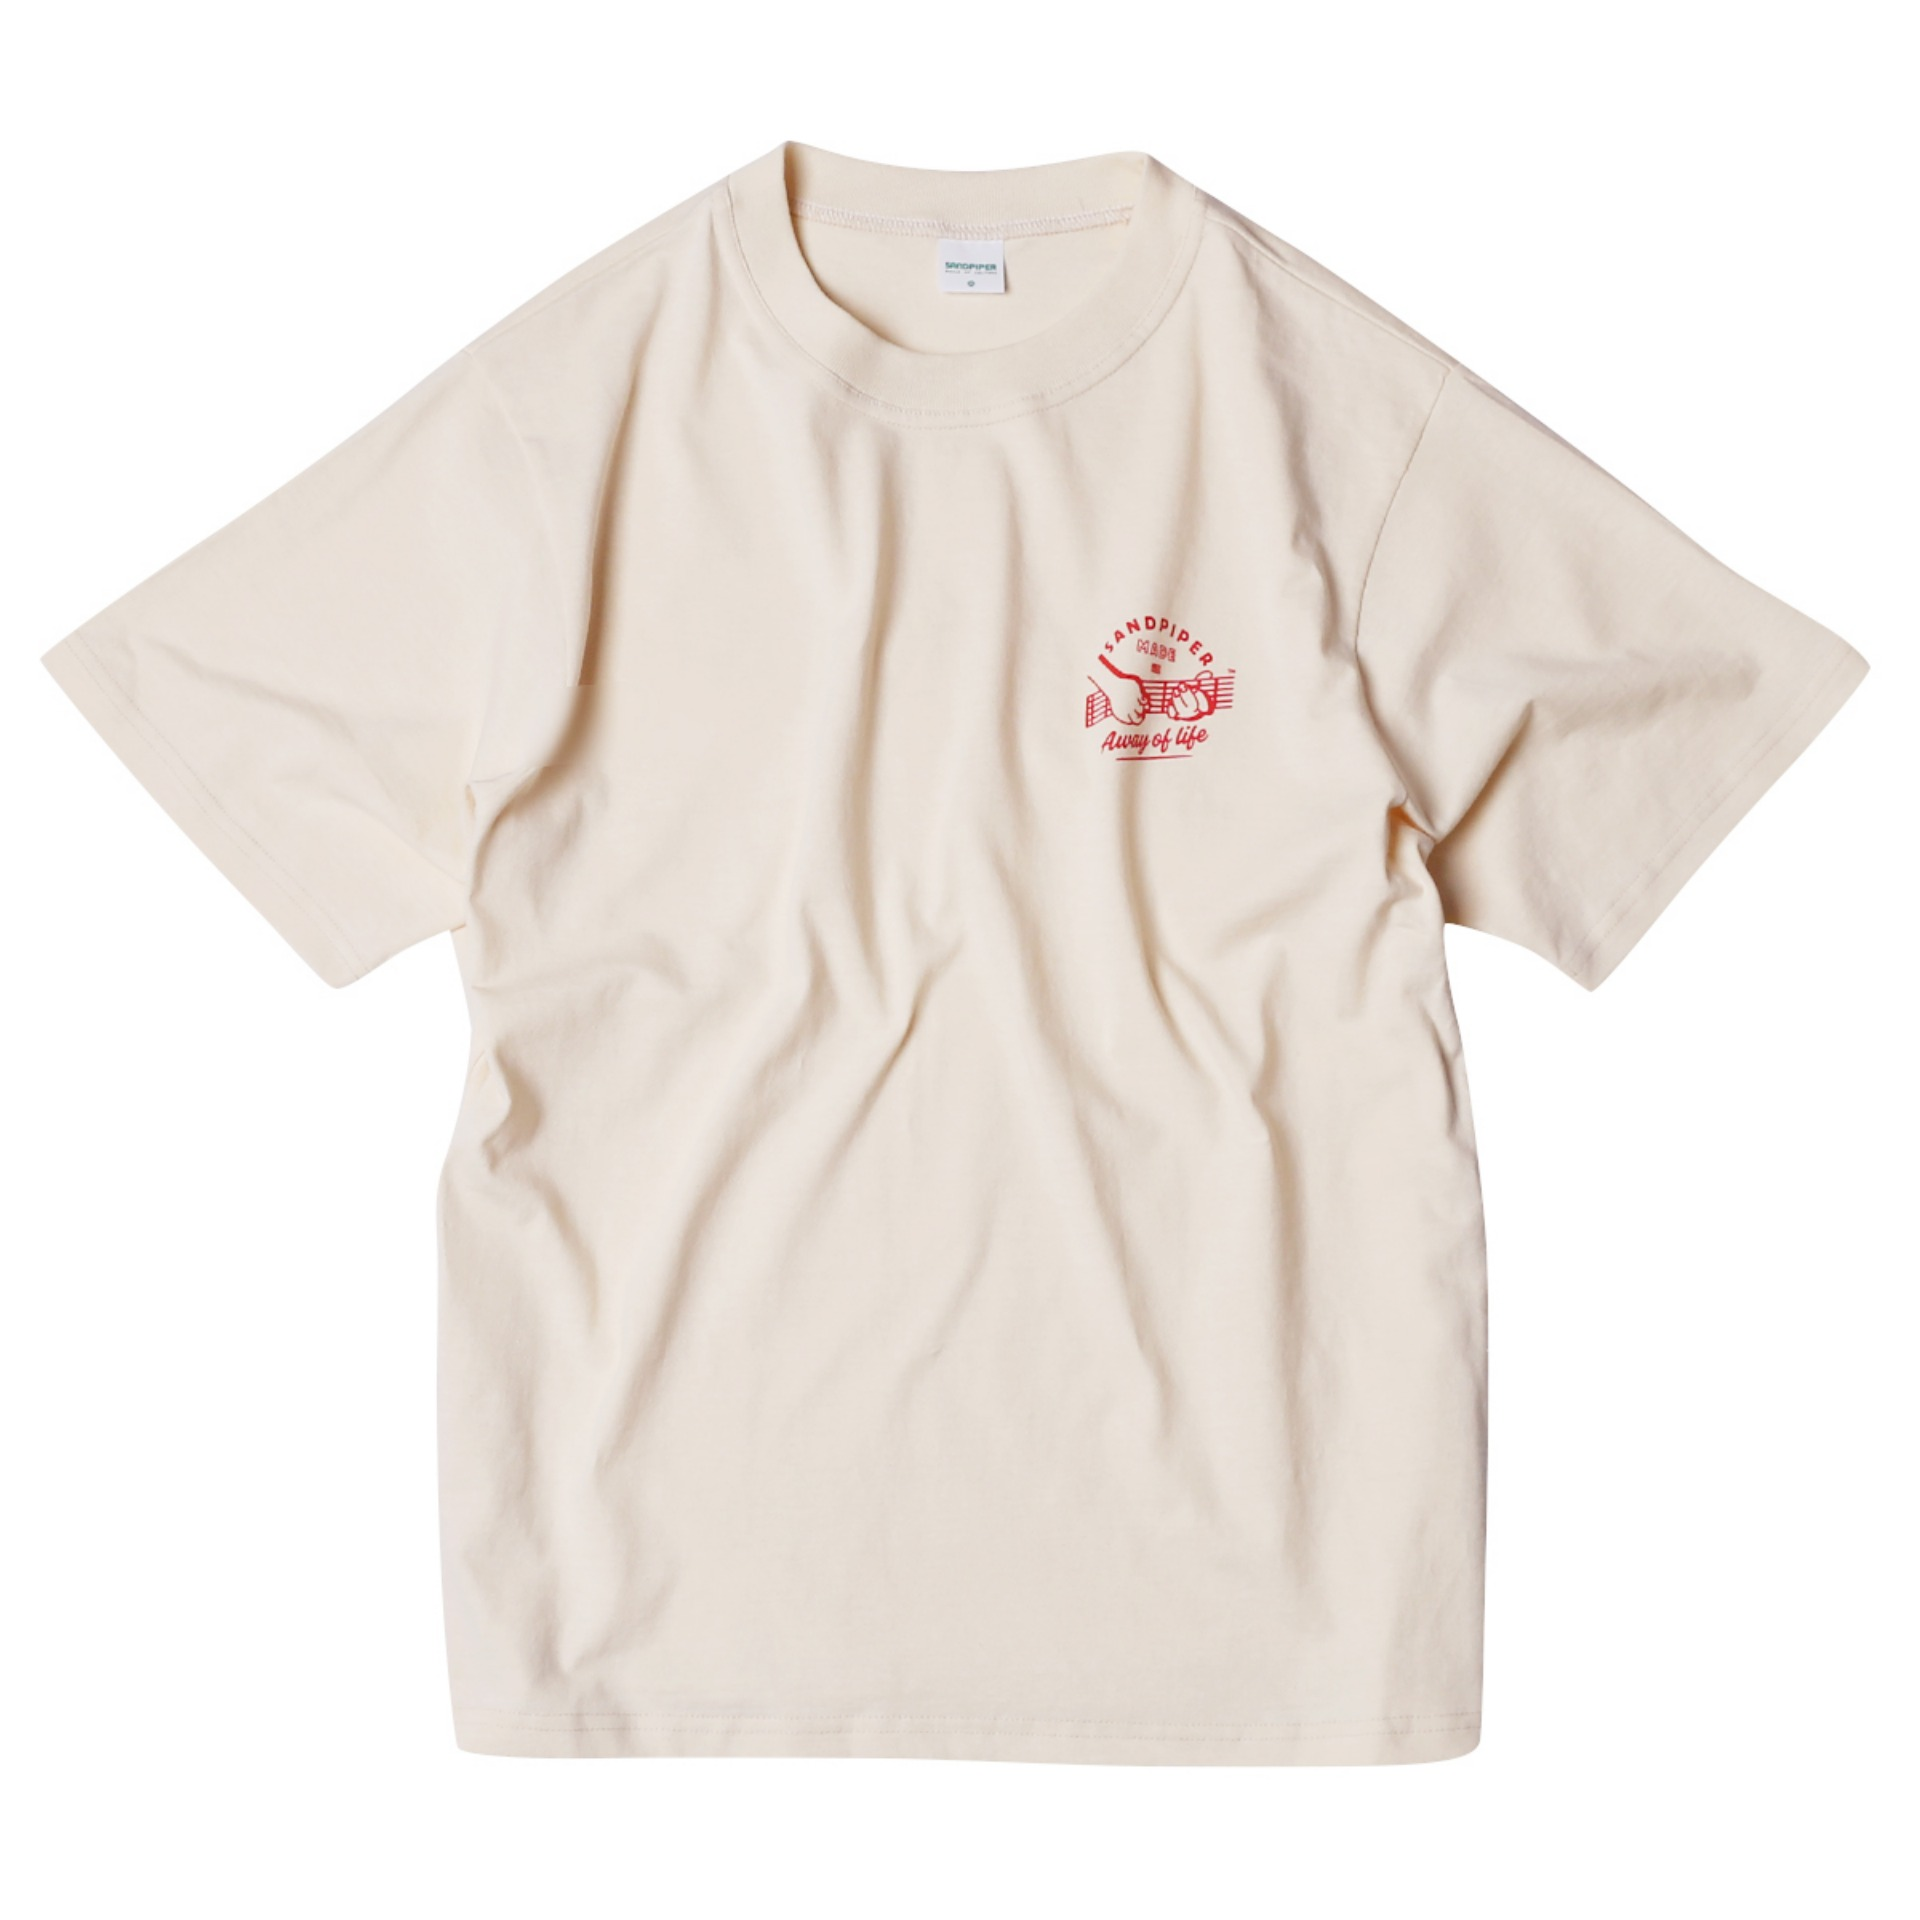 S.FACE GUITARLIST T SHIRTS(BEIGE)